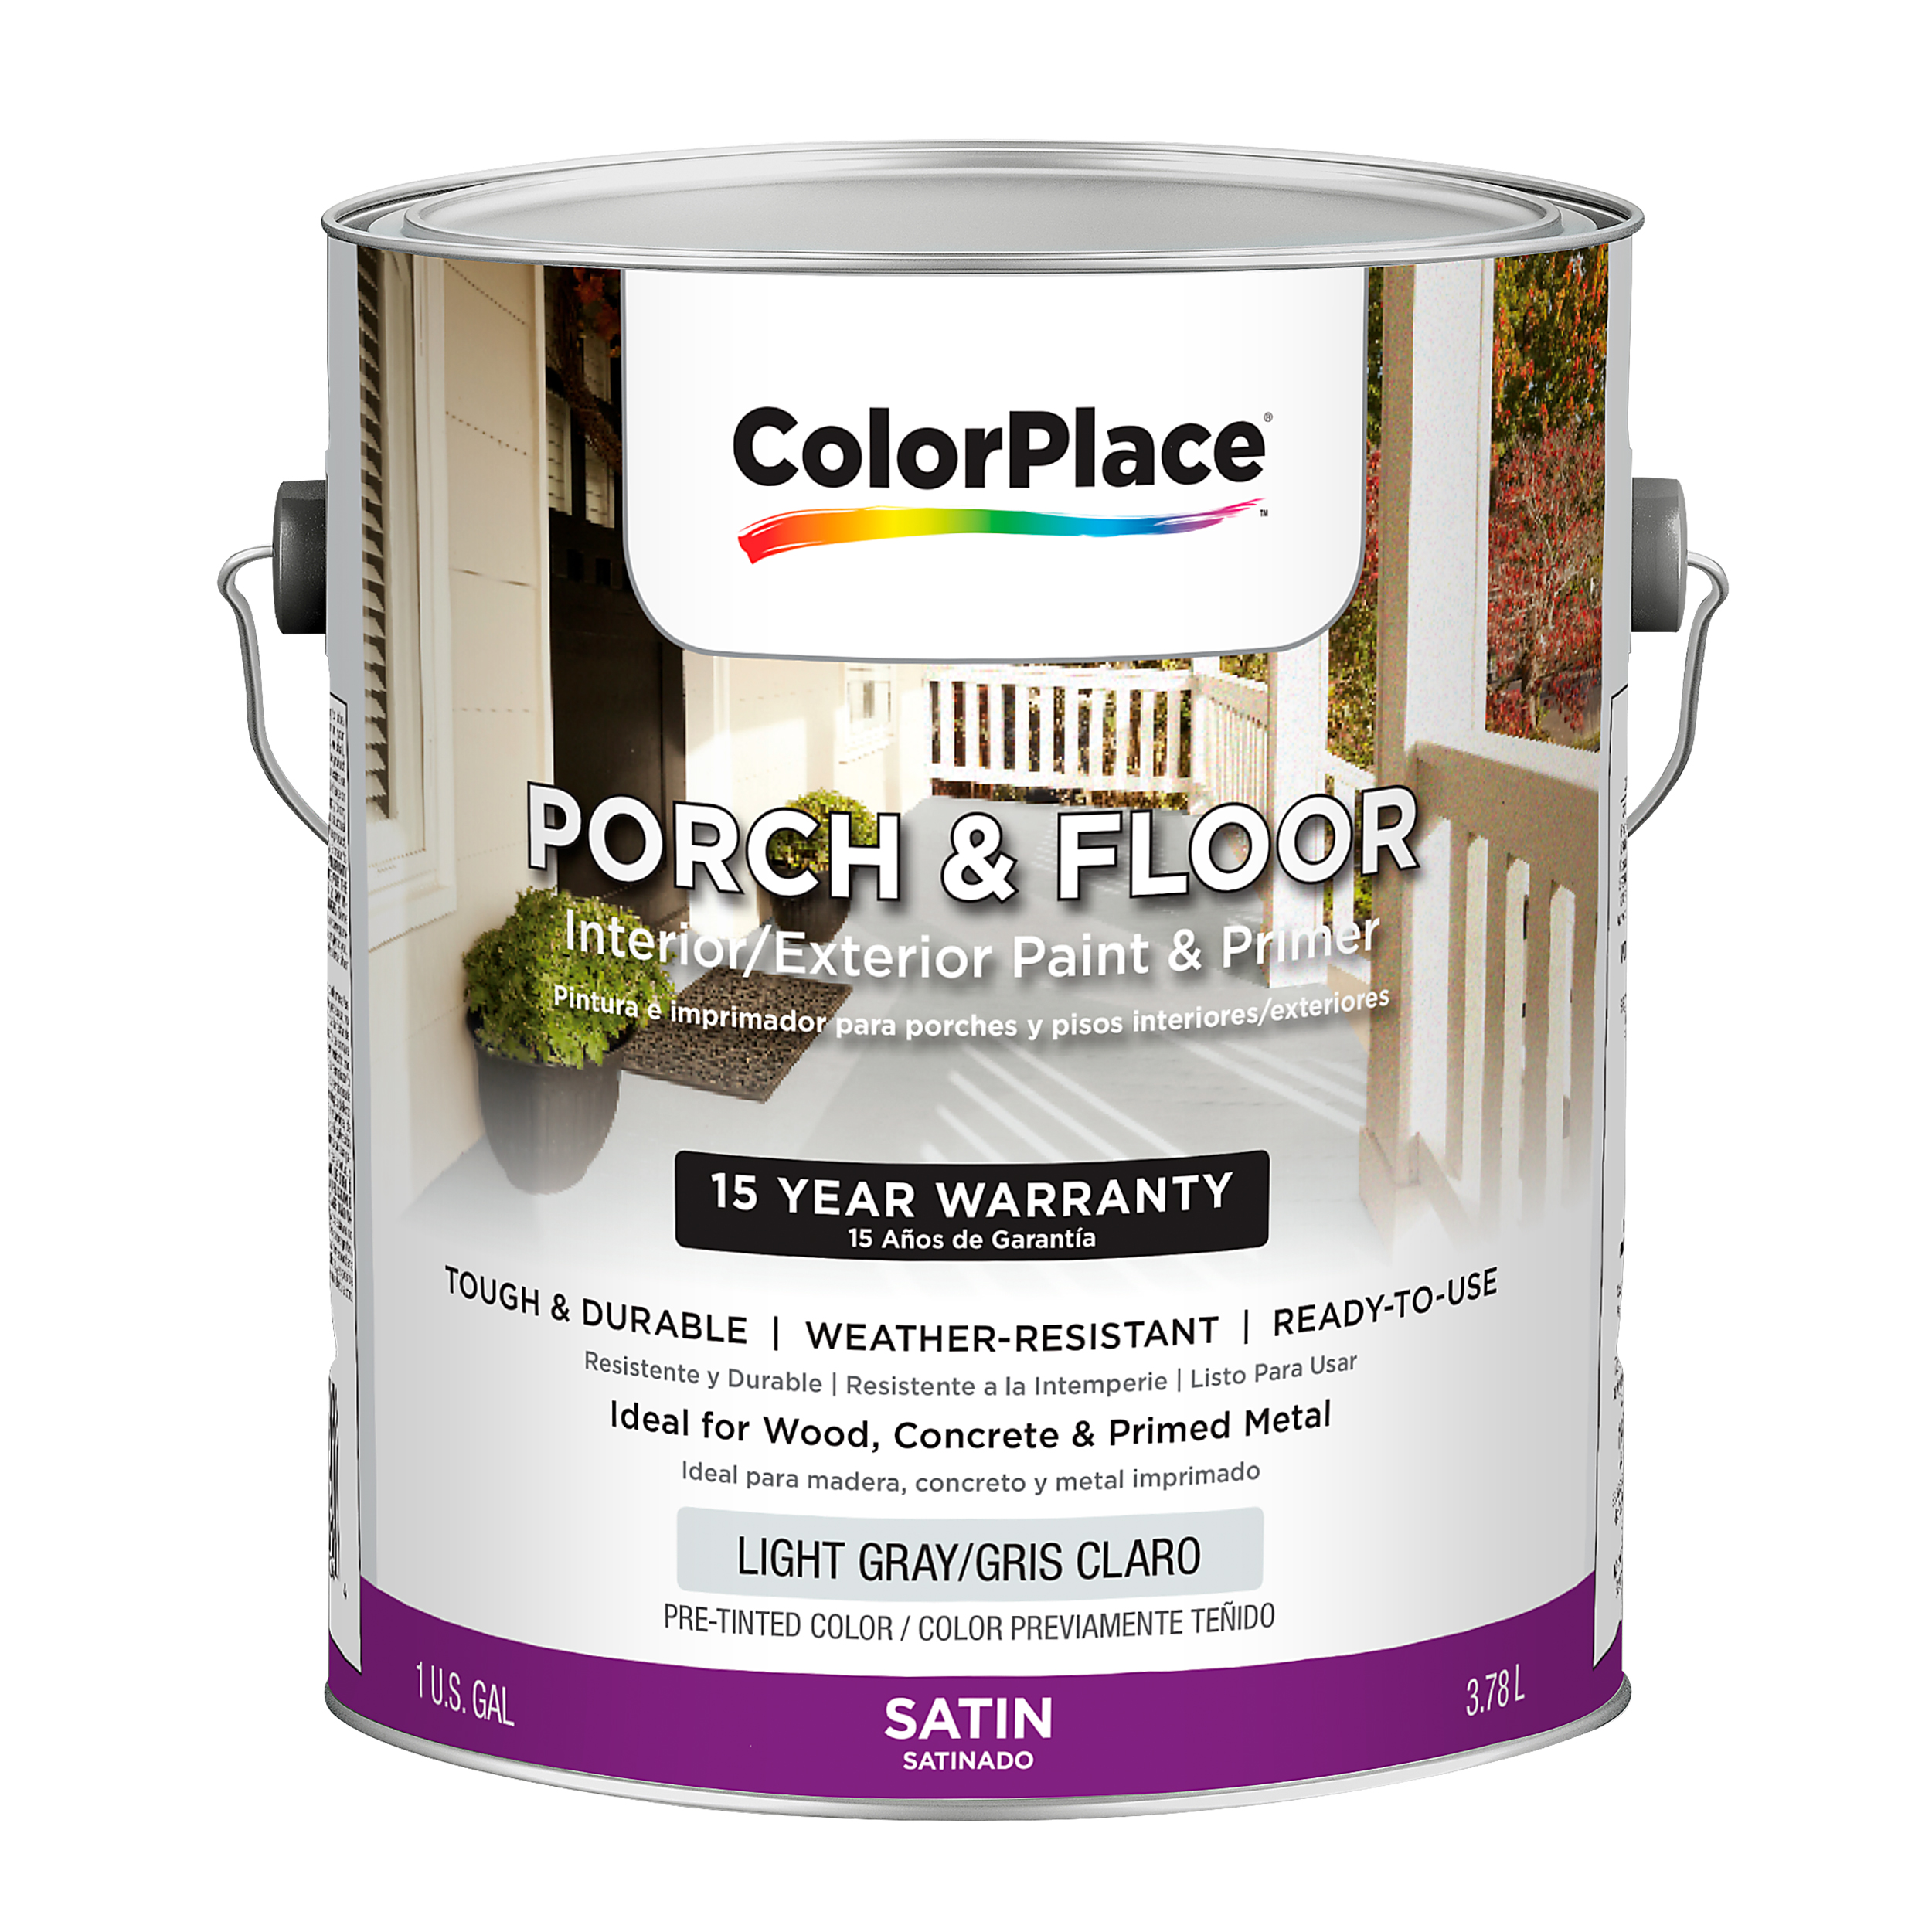 ColorPlace Satin Interior/Exterior Porch and Floor Light Gray Paint and Primer, 1-Gal